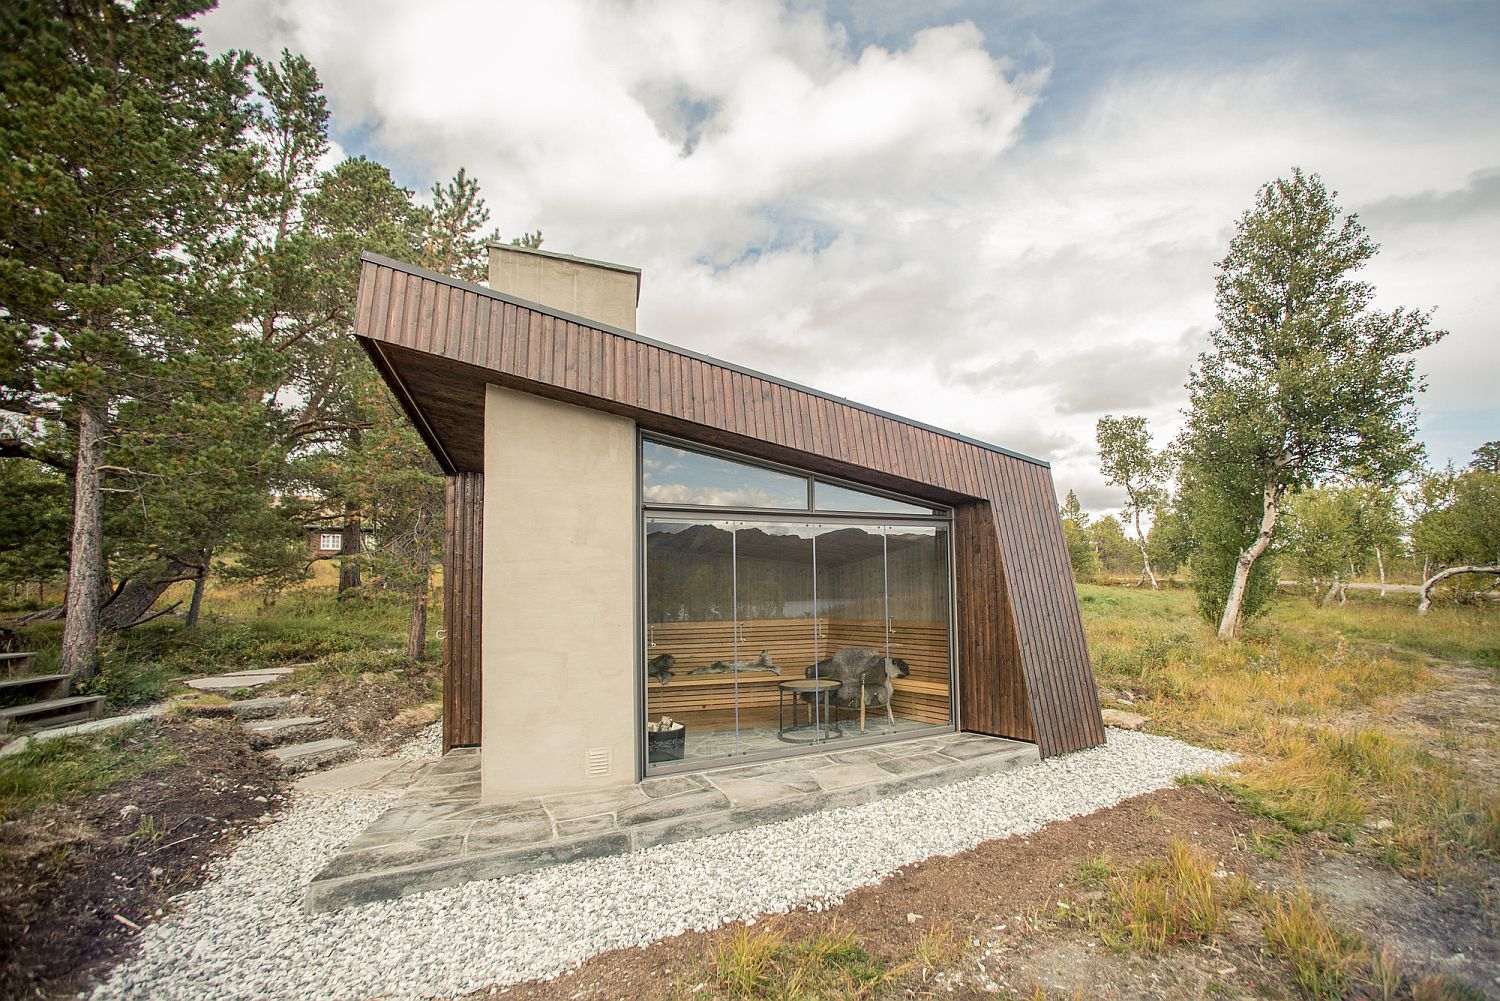 Angled form of the cabin gives it a unique silhouette